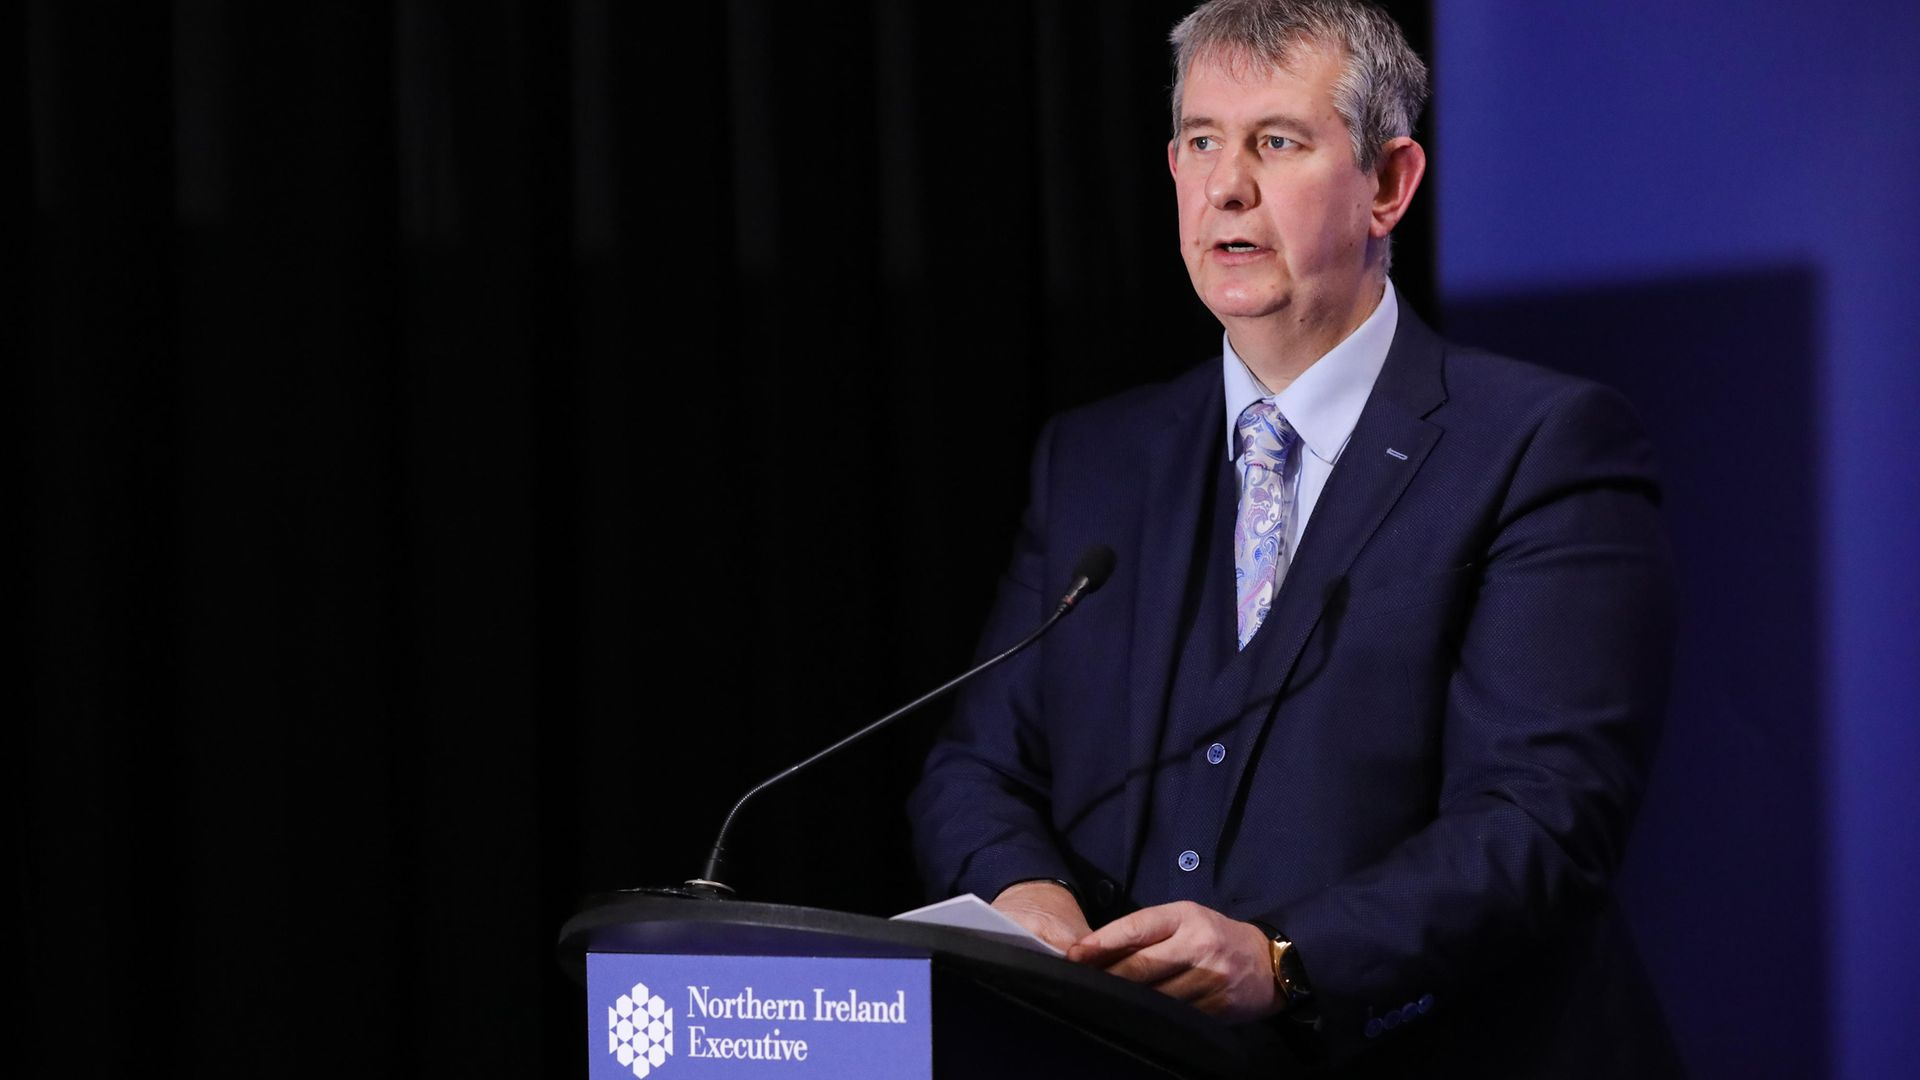 Edwin Poots, Minister of Agriculture, Environment and Rural Affairs during the daily media broadcast in the Long Gallery at Parliament Buildings, Stormont - Credit: PA